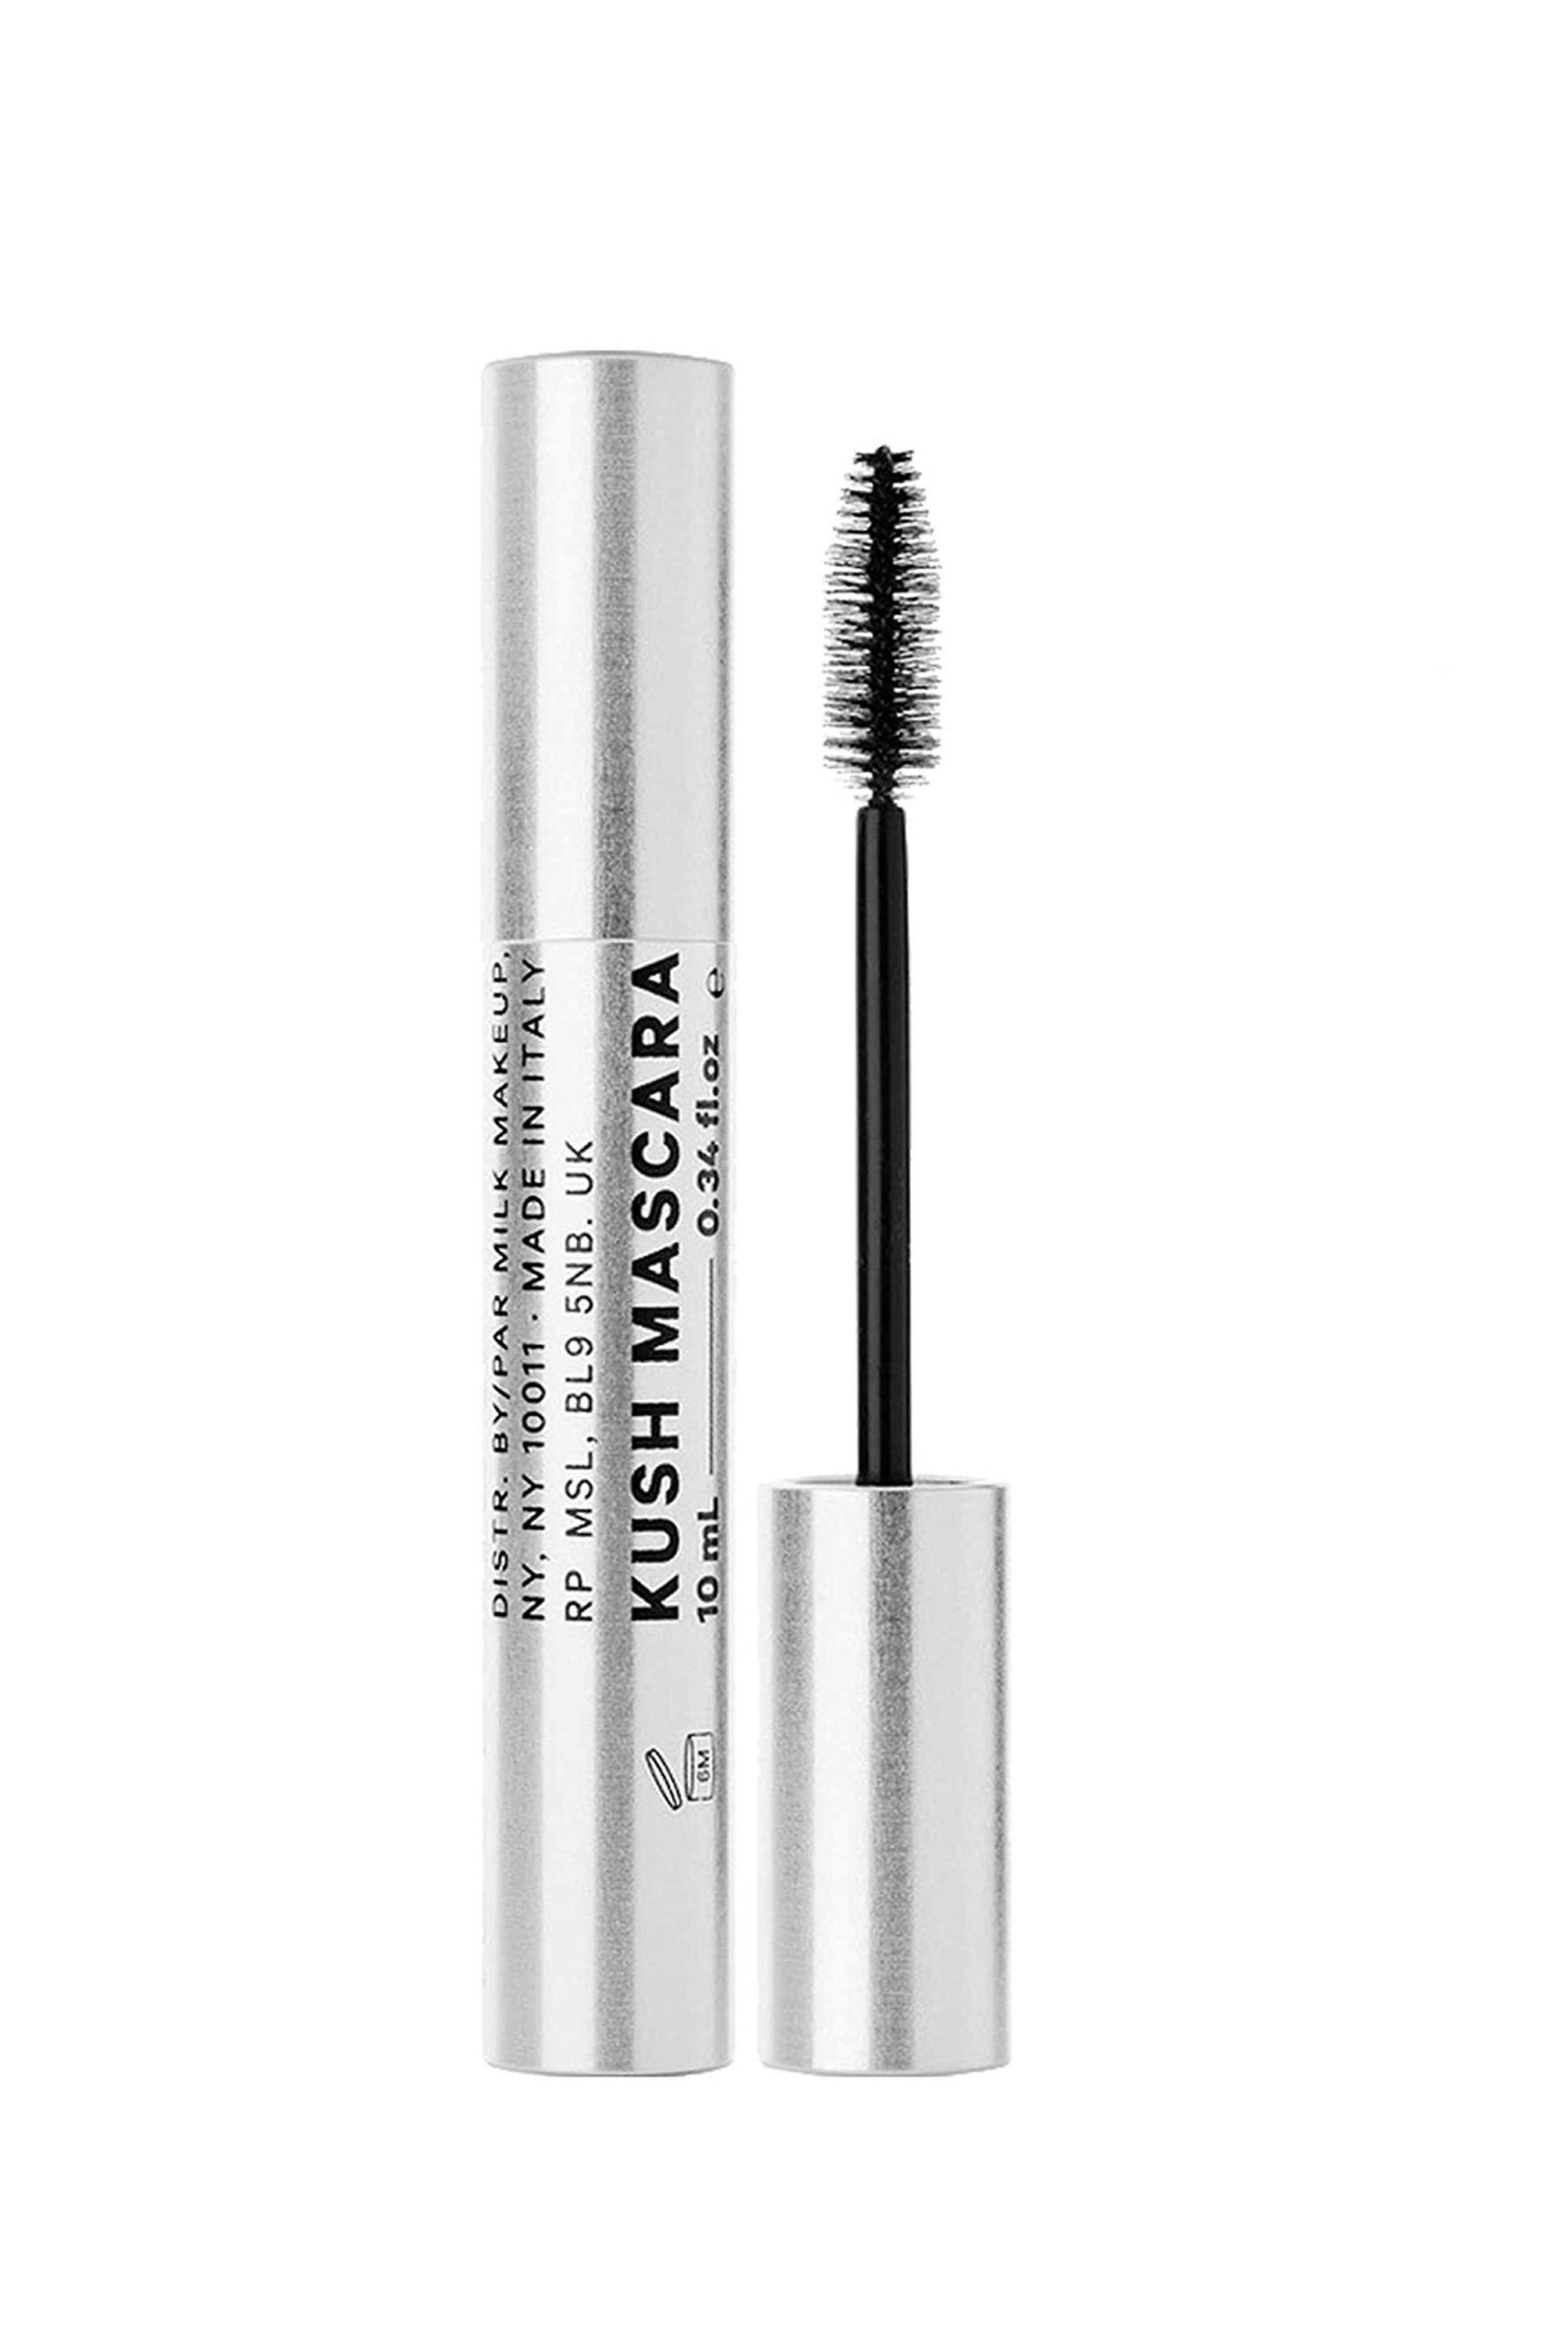 10 Best Mascaras in 2019 - Top Mascara Reviews for Volume and Length - ELLE.com